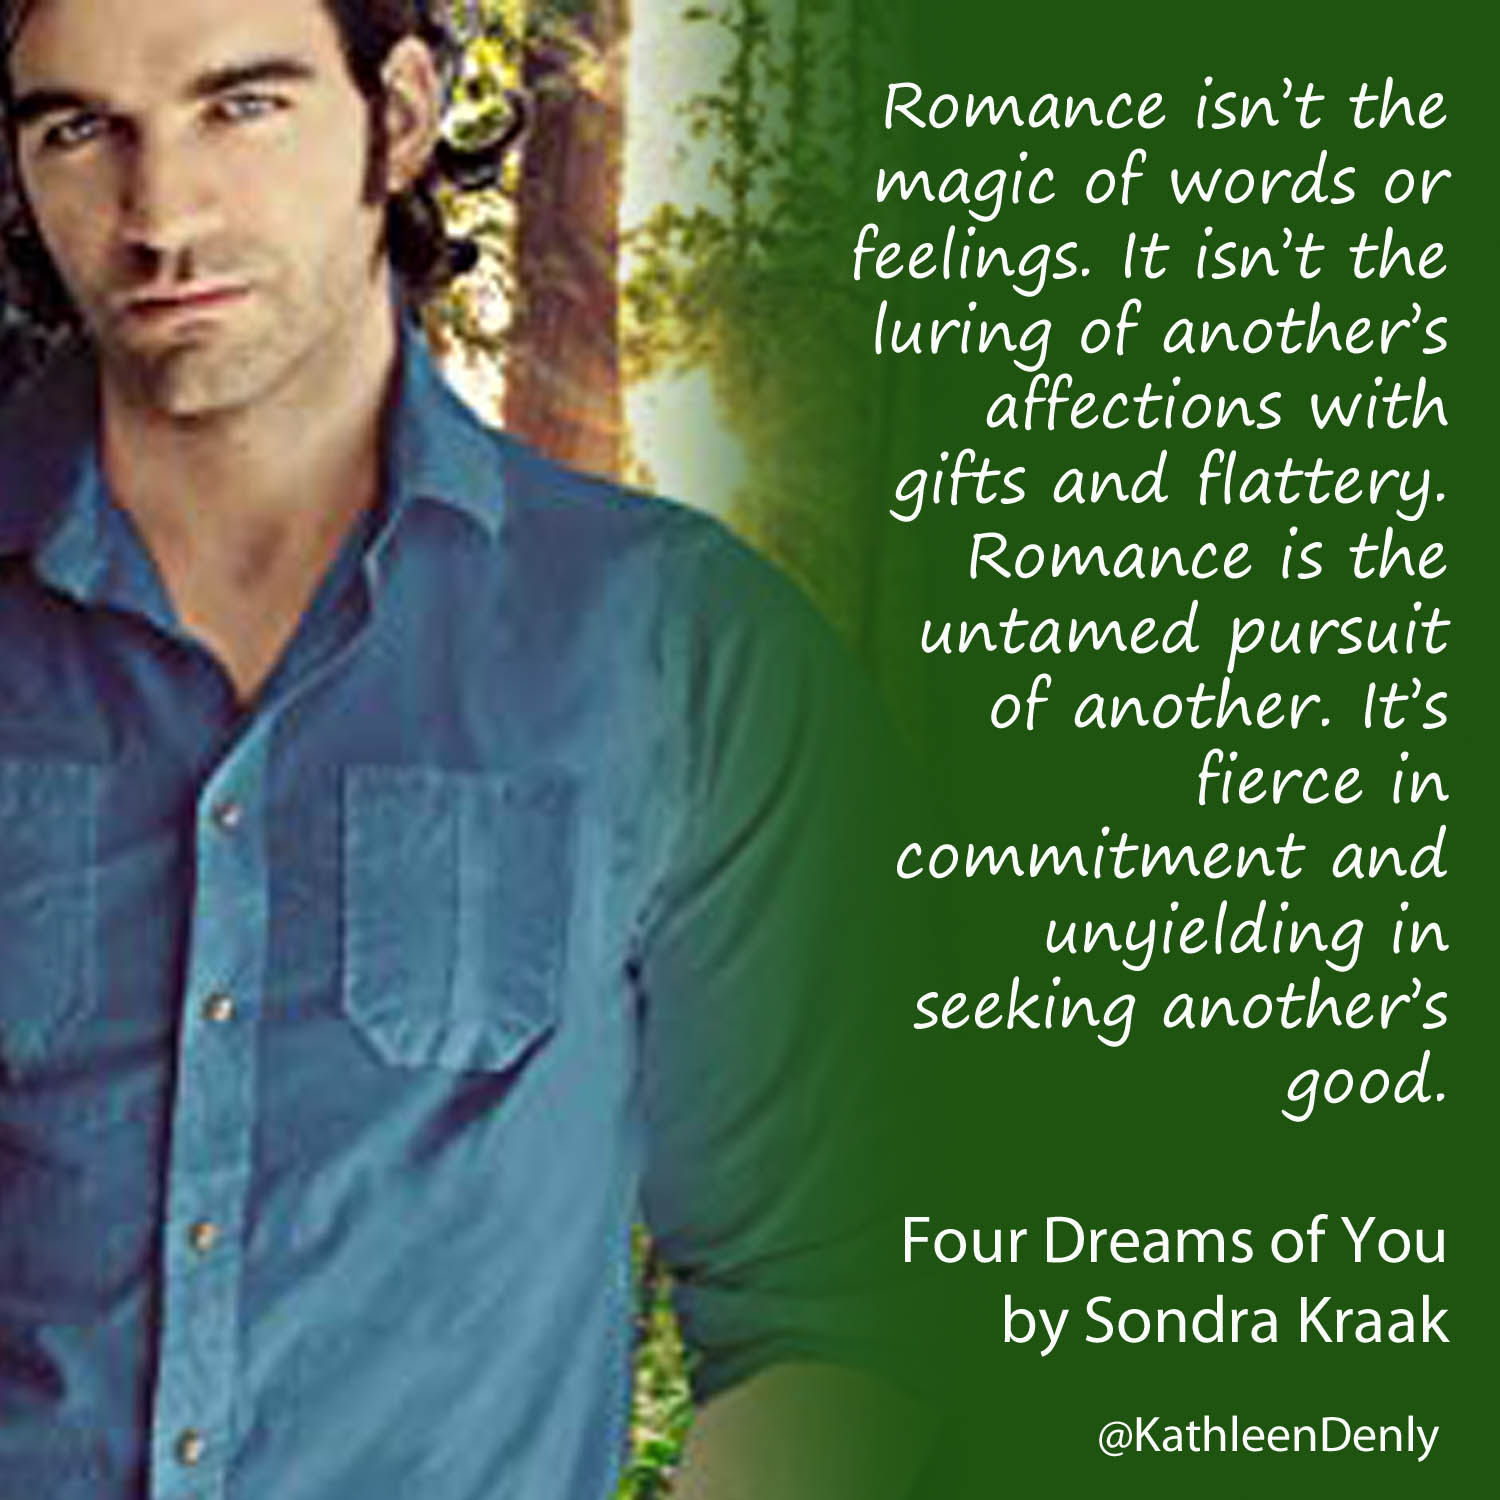 Book Quote - Four Dreams of You - Romance isn't